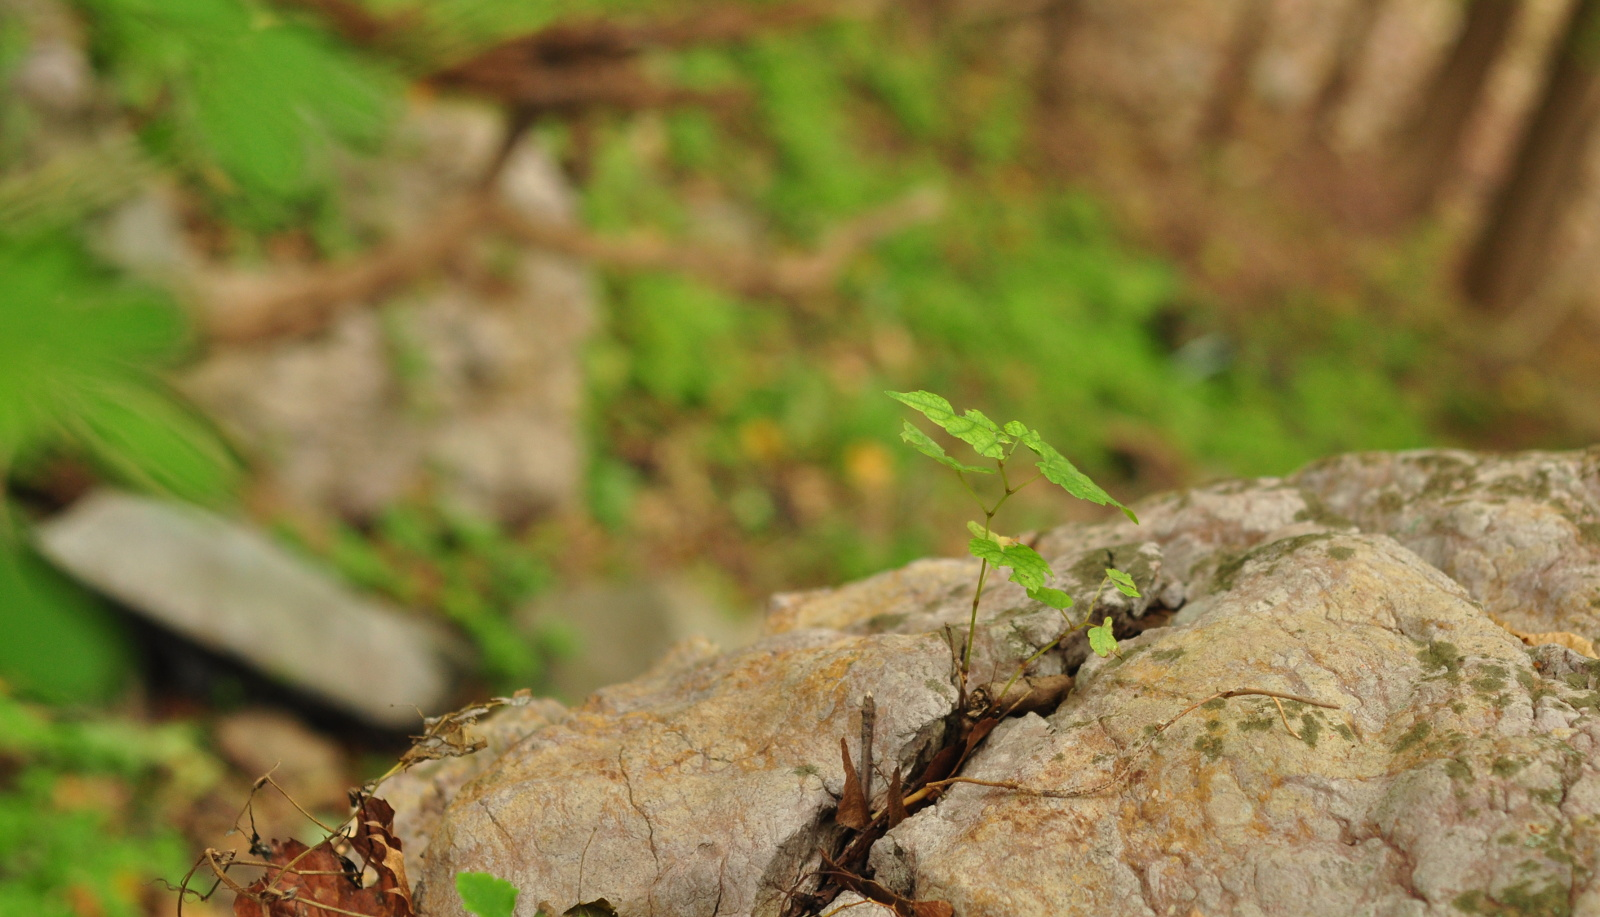 Sapling growing in rock in forest